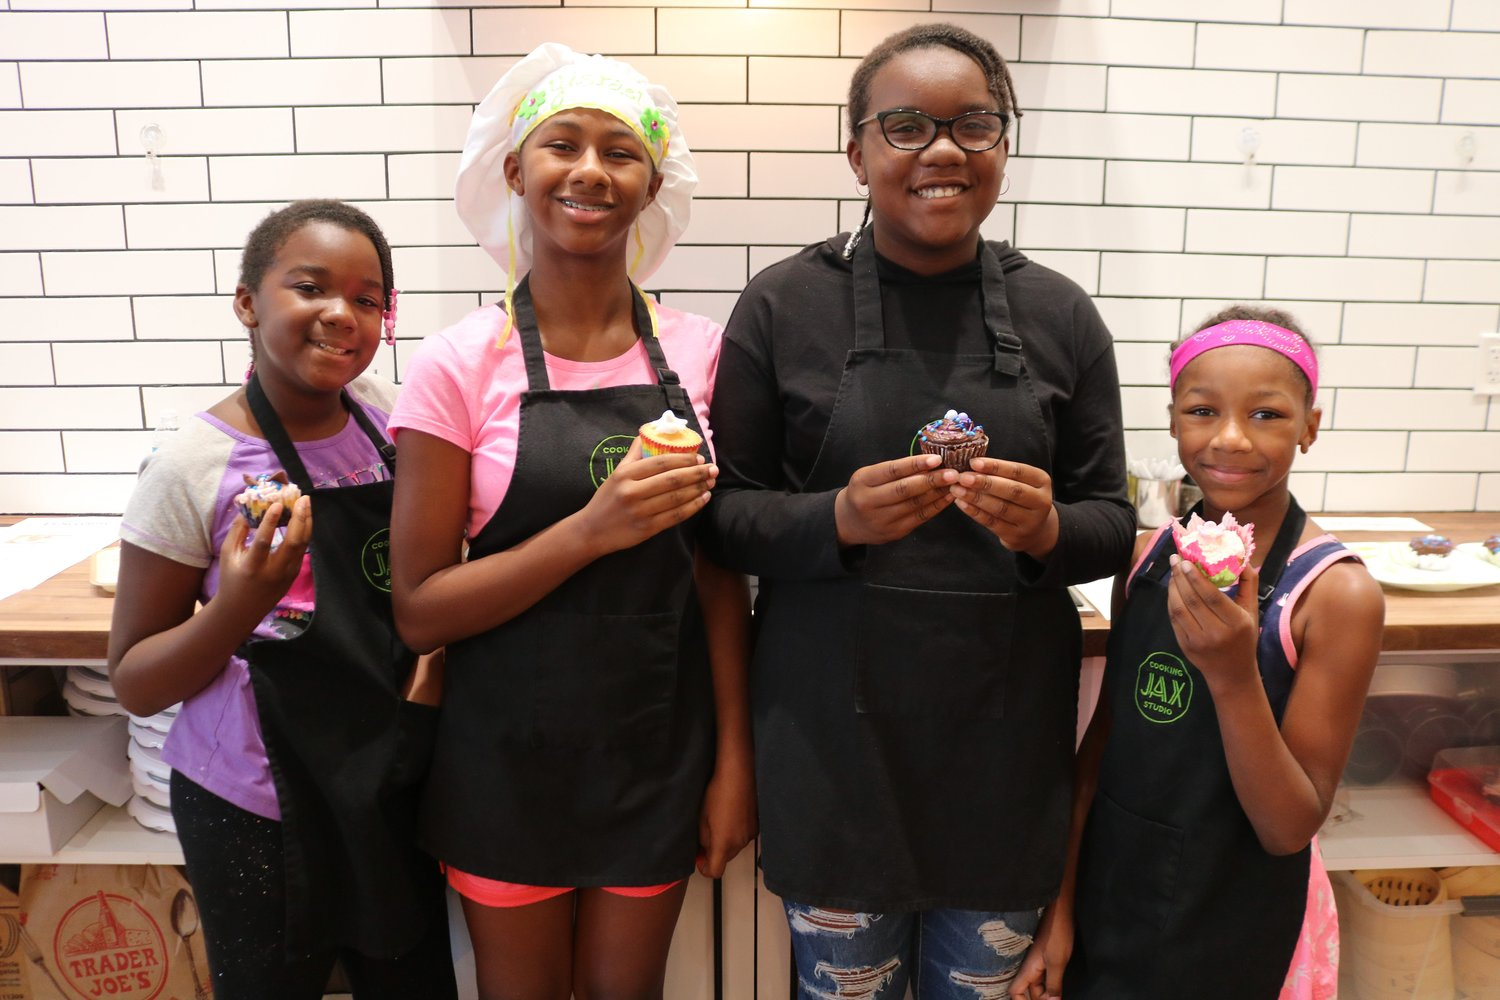 It was a family affair at the competition as siblings, cousins and contestants (left to right) Serenity Brown, Yisrael Washington, Symphony Brown and Amani Washington pose with their cupcakes after the contest.